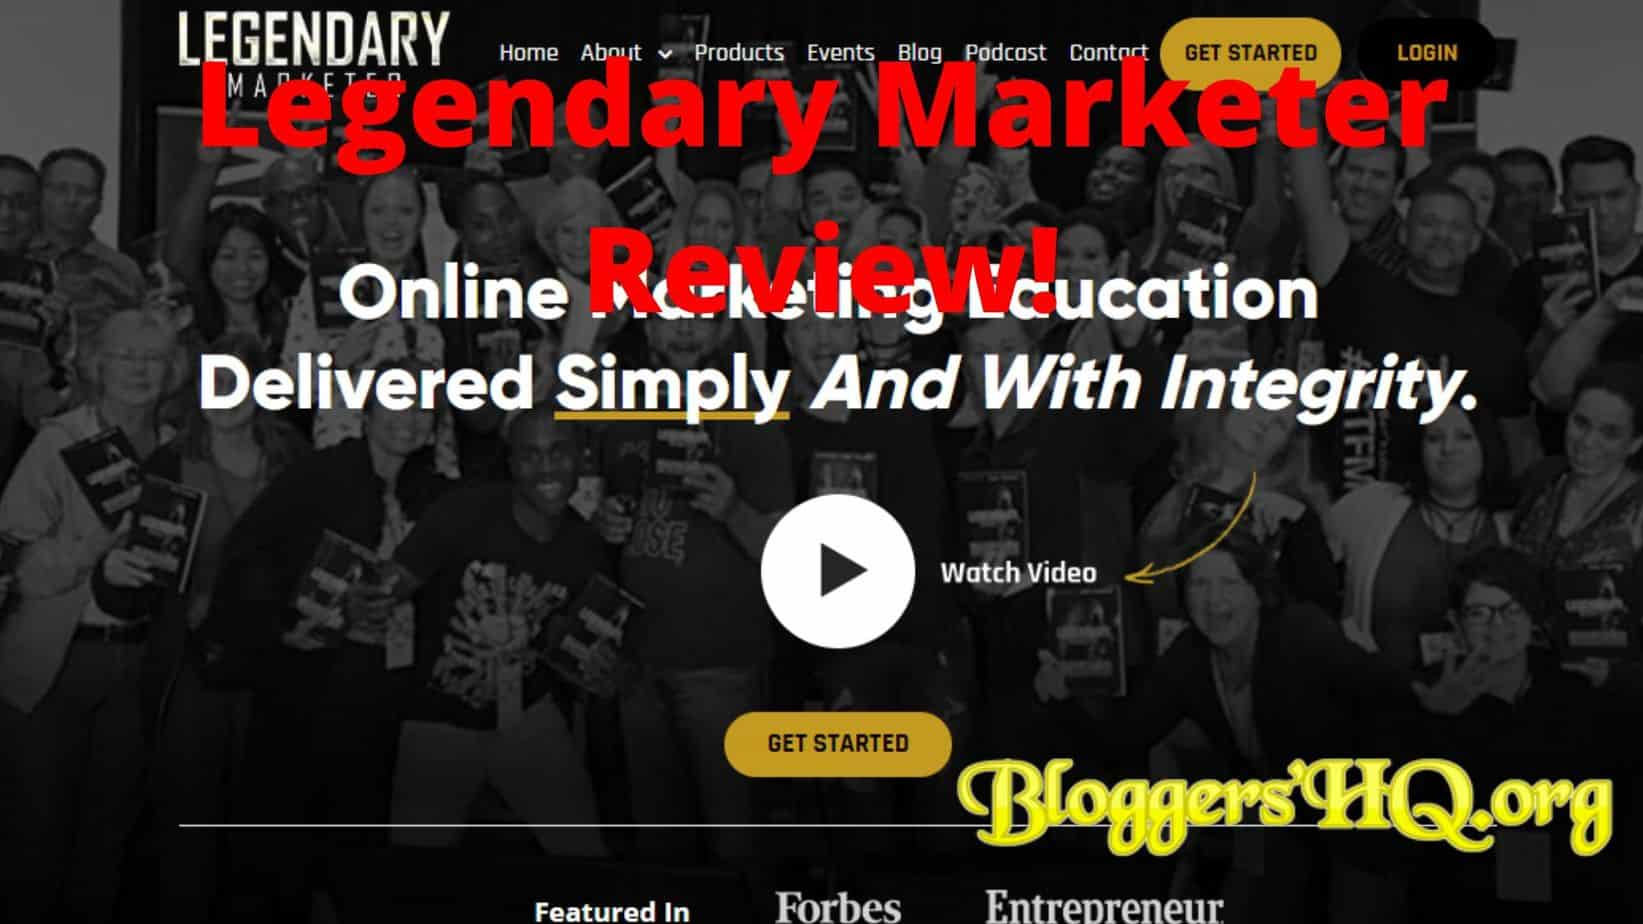 Cheap Internet Marketing Program Legendary Marketer Used Ebay